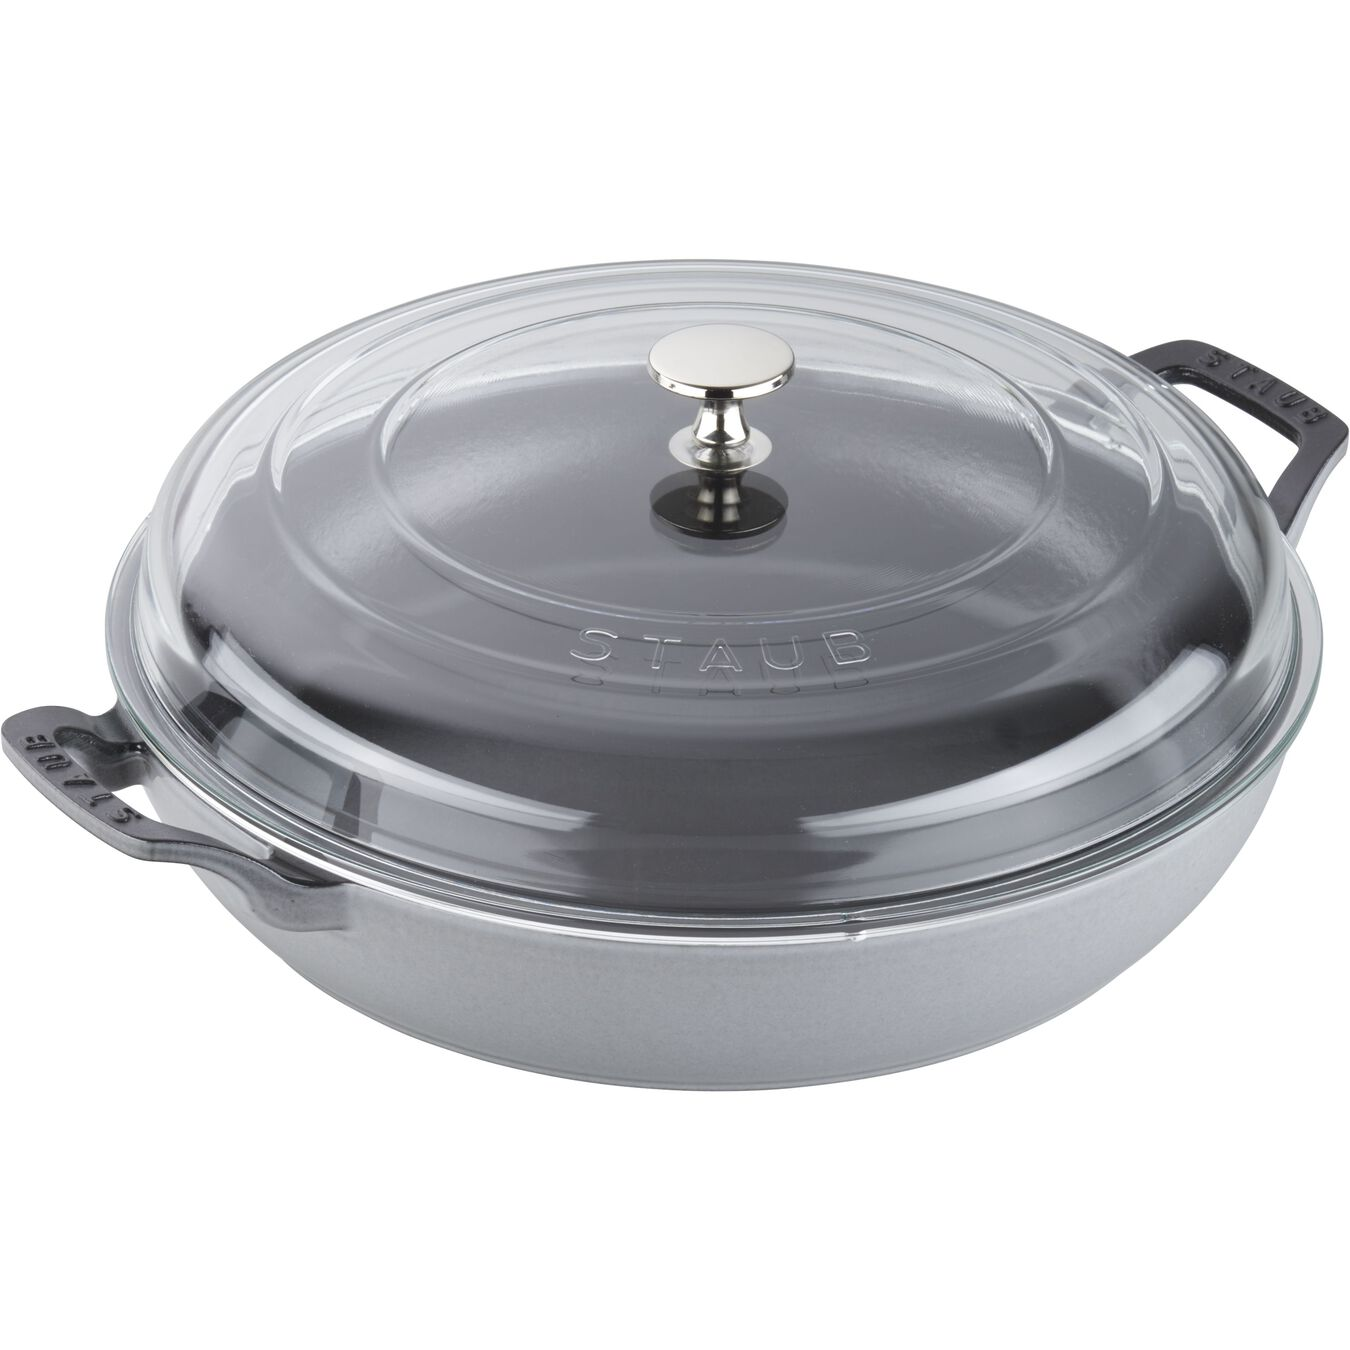 3.5-qt Braiser with Glass Lid - Graphite Grey,,large 3